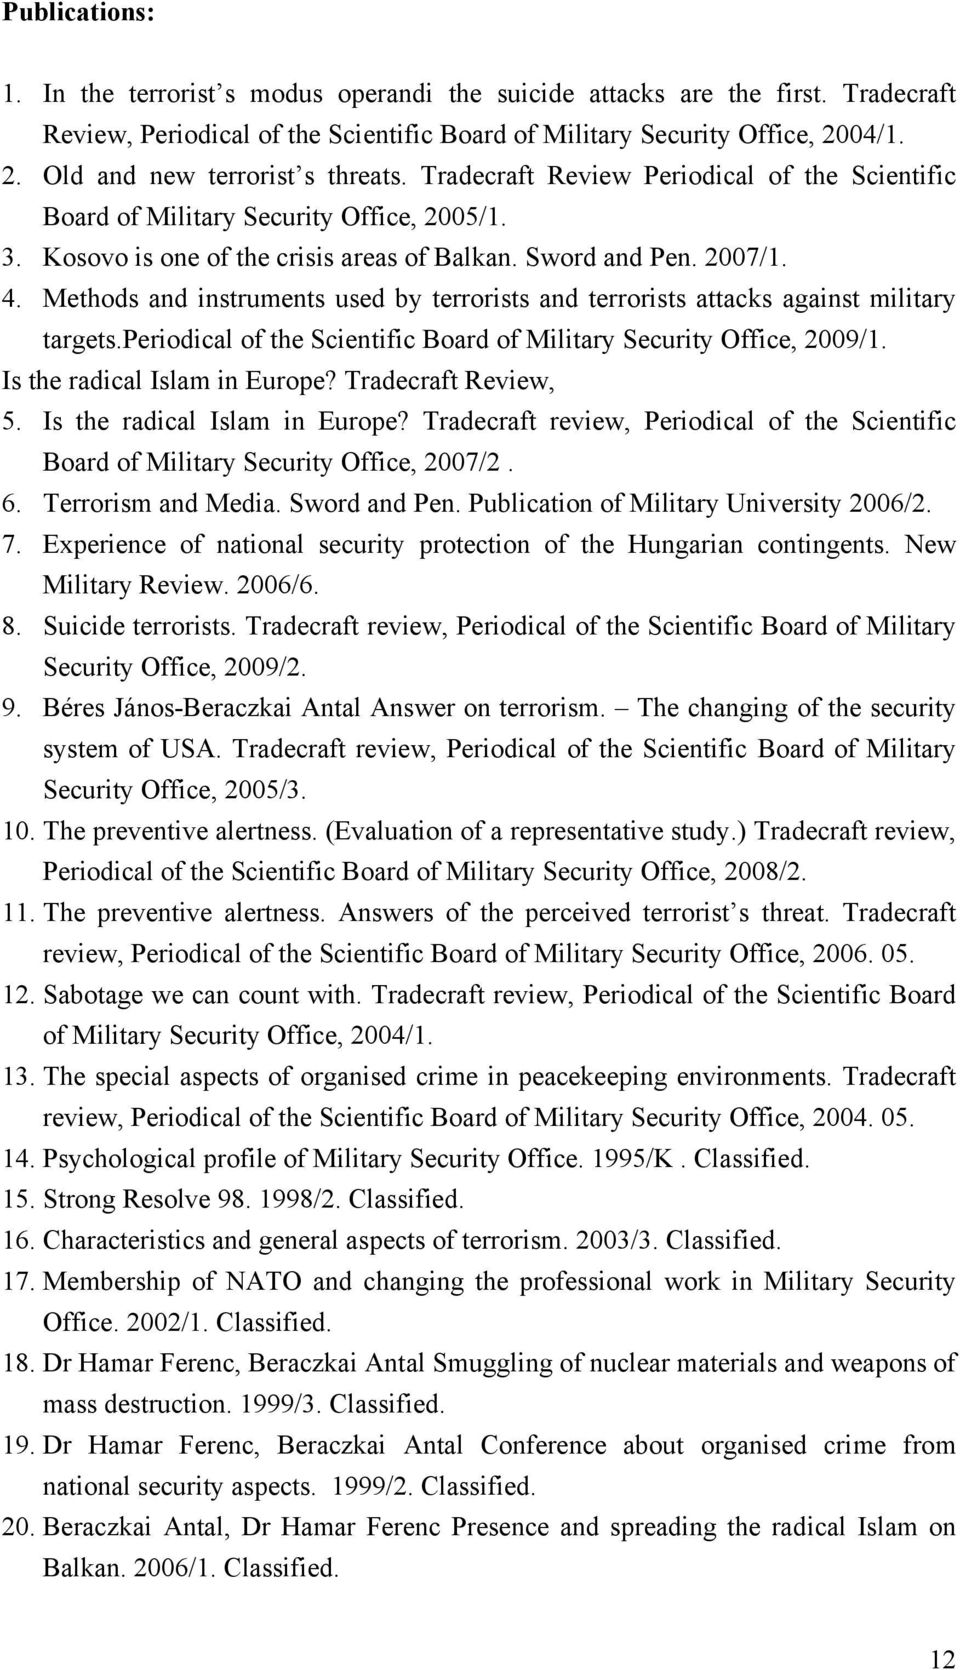 2007/1. 4. Methods and instruments used by terrorists and terrorists attacks against military targets.periodical of the Scientific Board of Military Security Office, 2009/1.